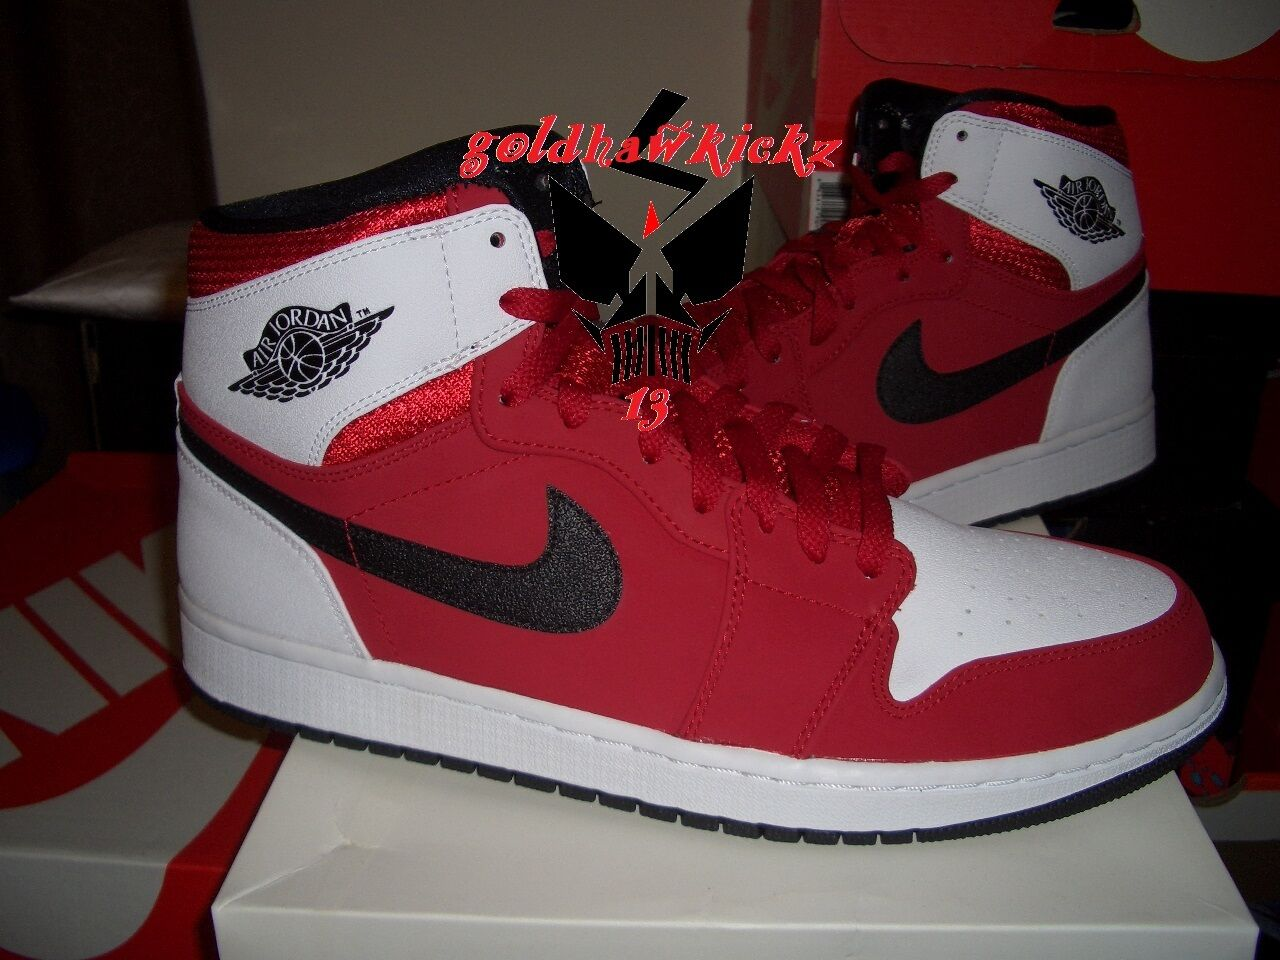 NIKE AIR JORDAN 1 RETRO HIGH gym red black blake griffin PE 332550 601 carmine